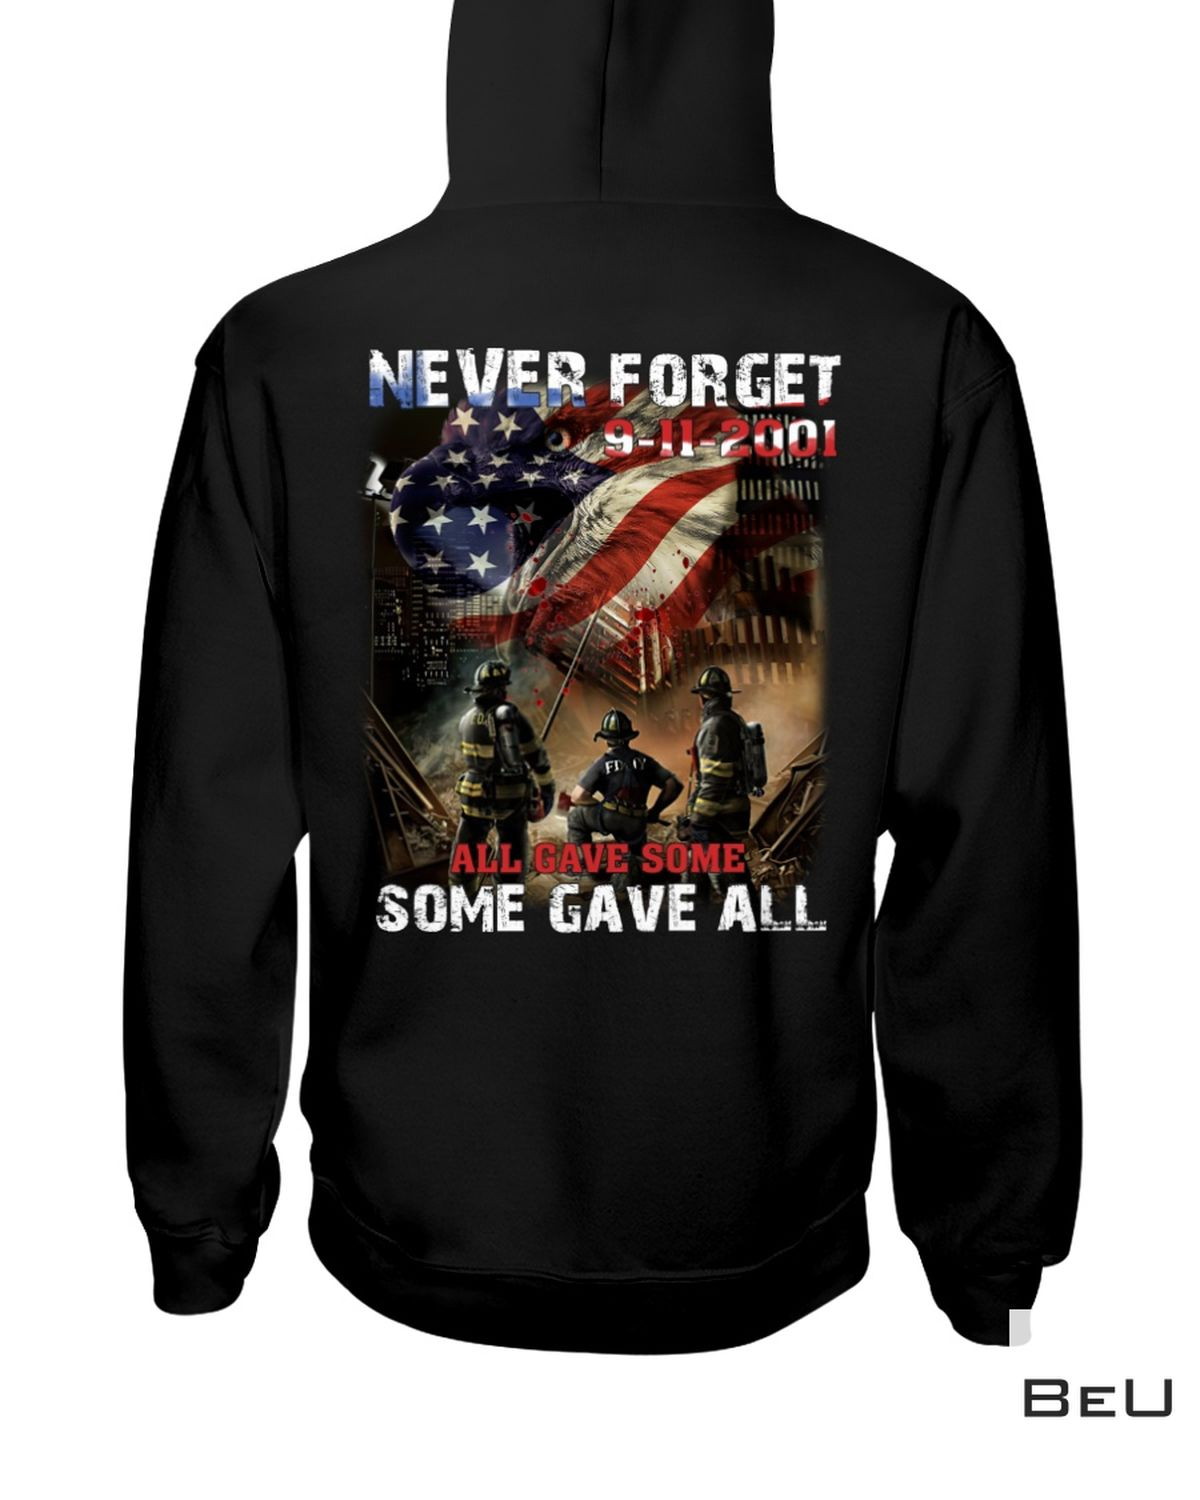 Print On Demand Never Forget 9-11-2001 All Gave Some Some Gave All Shirt, hoodie